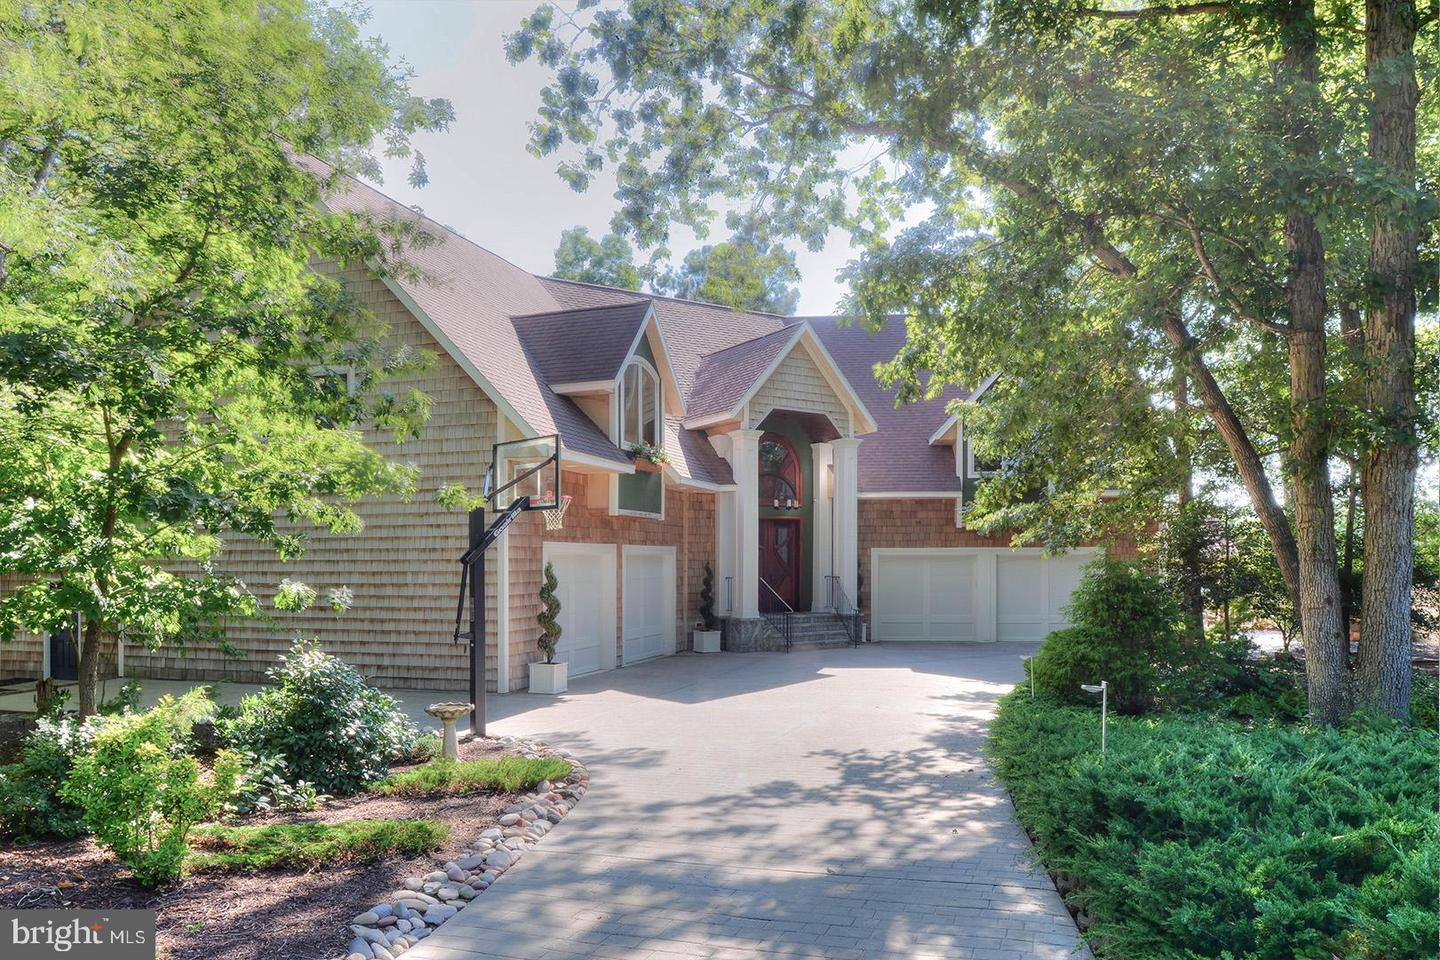 DESU100153-121615183271-2019-08-05-13-16-14 Single Family Homes for Sale in Rehoboth Beach, Lewes and More - Rehoboth Beach Real Estate - Bryce Lingo and Shaun Tull REALTORS, Rehoboth Beach, Delaware